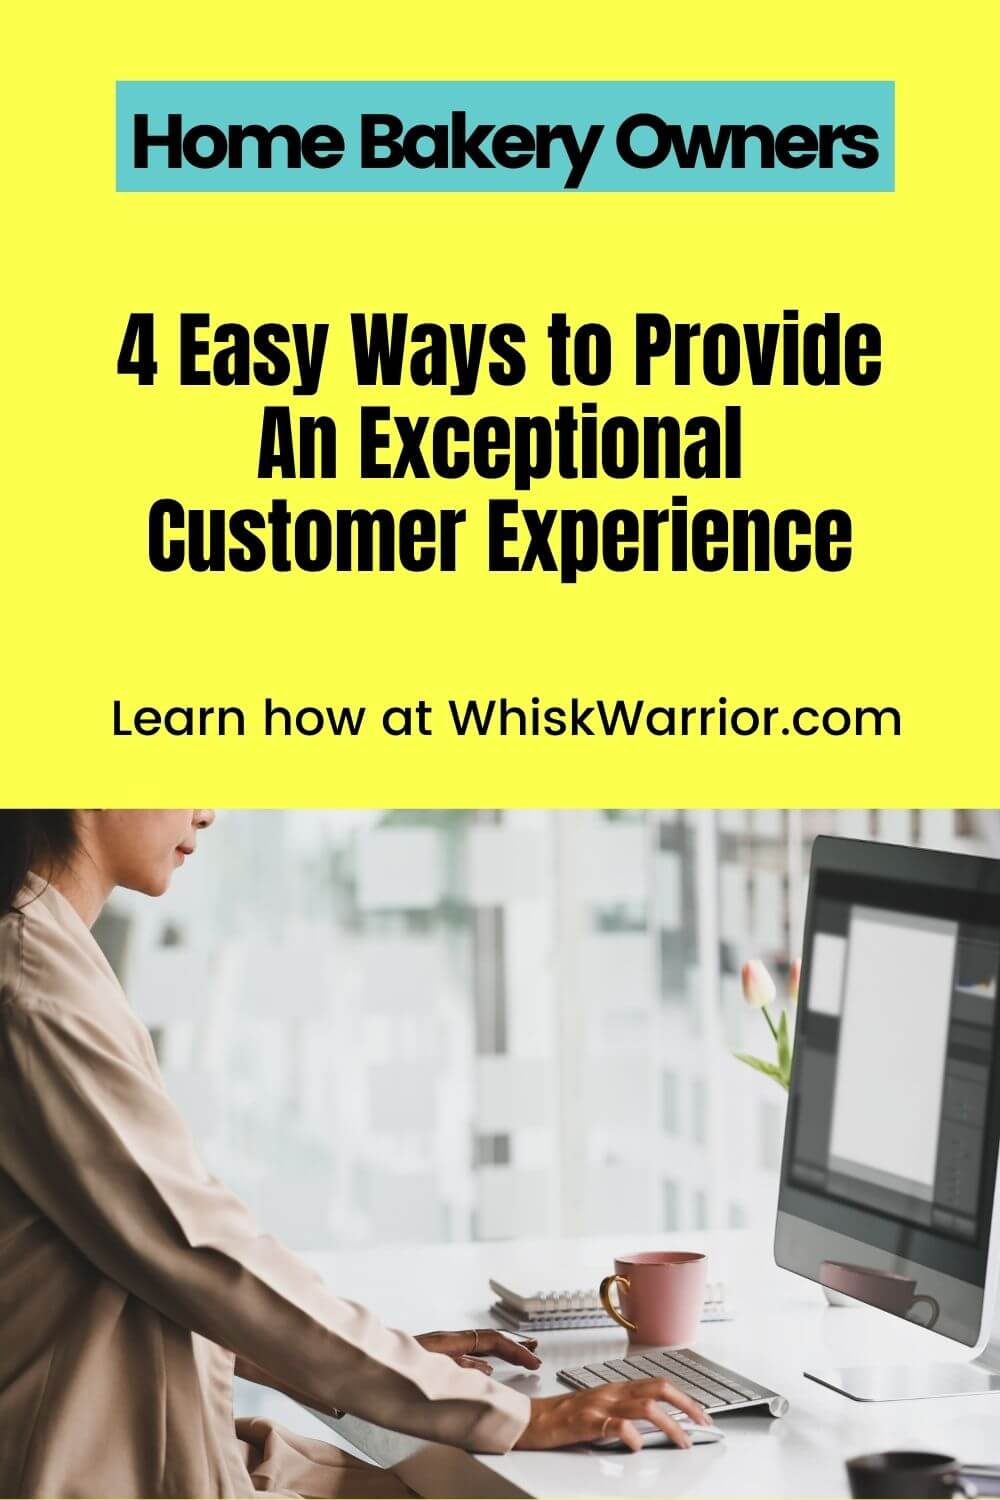 This blog will explain four crucial tactics to providing an overall exceptional customer experience. These steps will help set YOUR home bakery apart from others and make your customers want to return again and again.